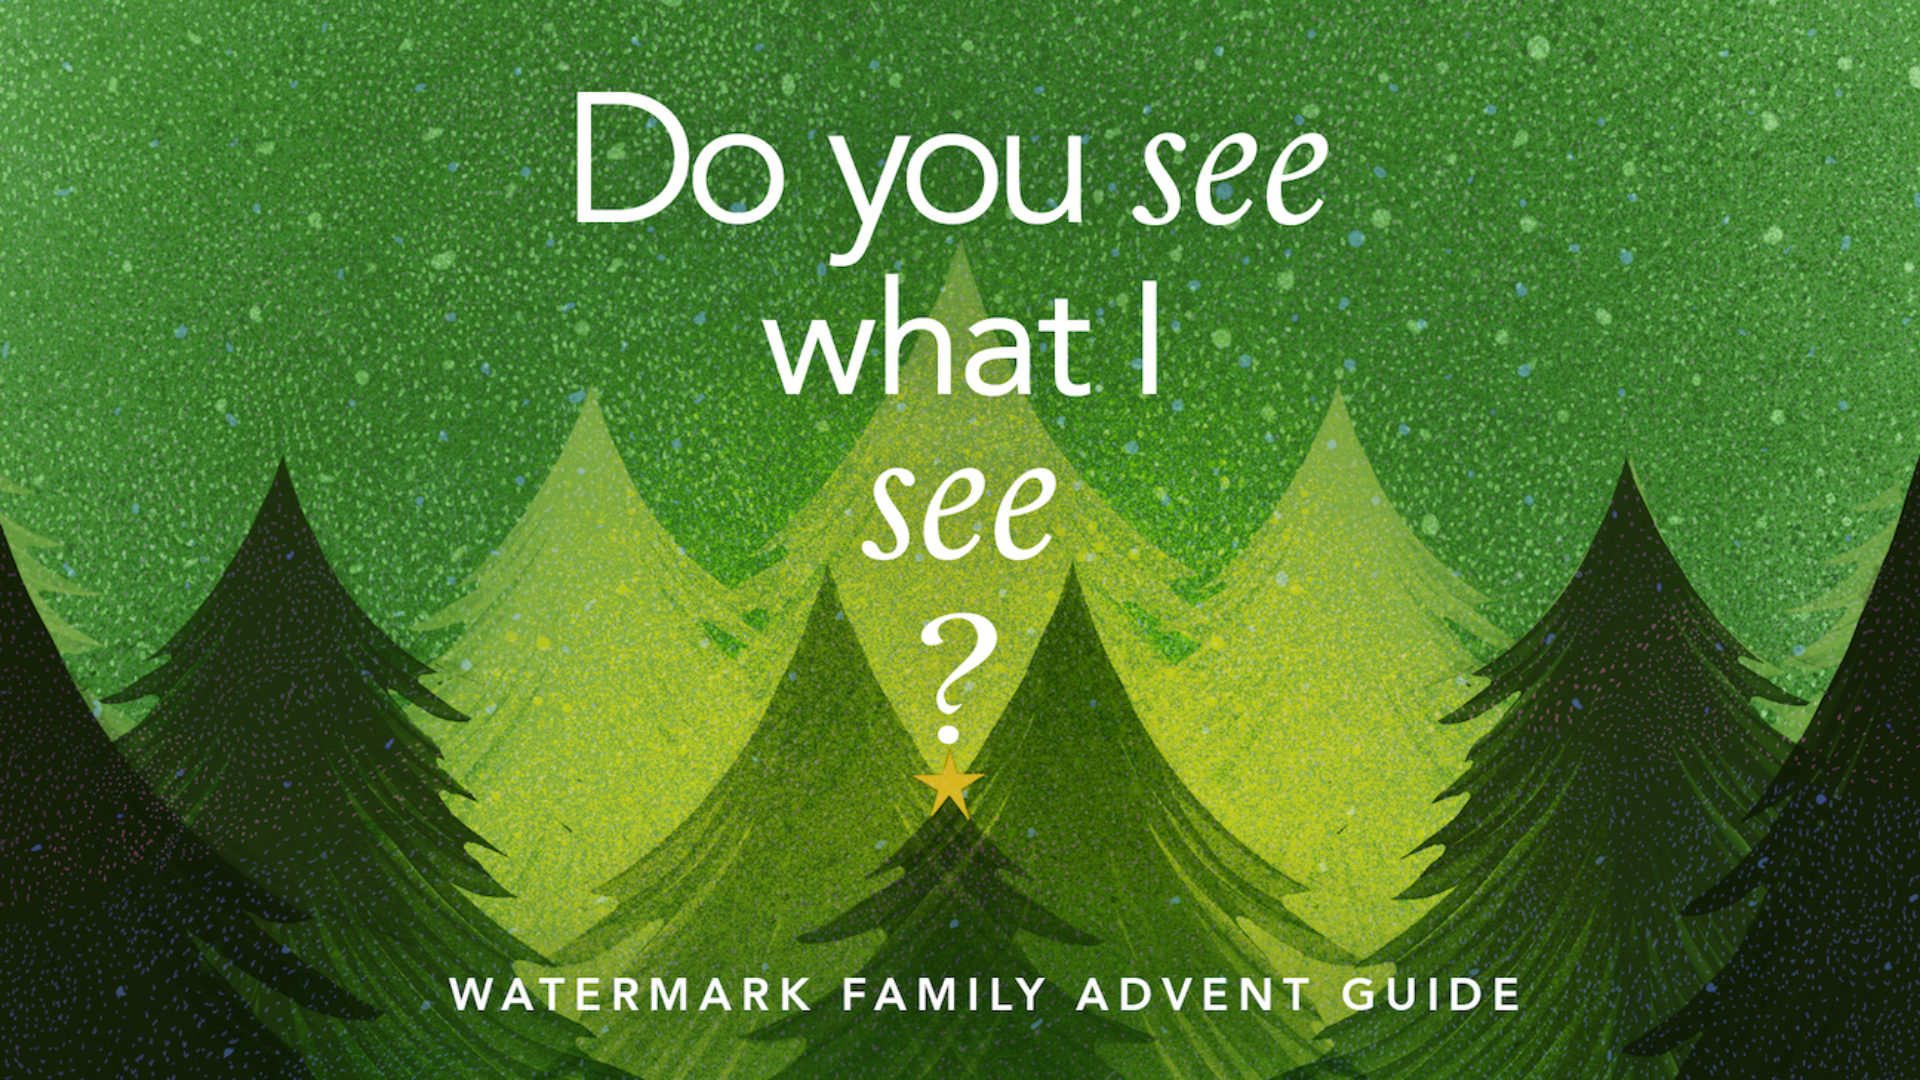 Do You See What I See?: A 2019 Family Advent Guide Hero Image